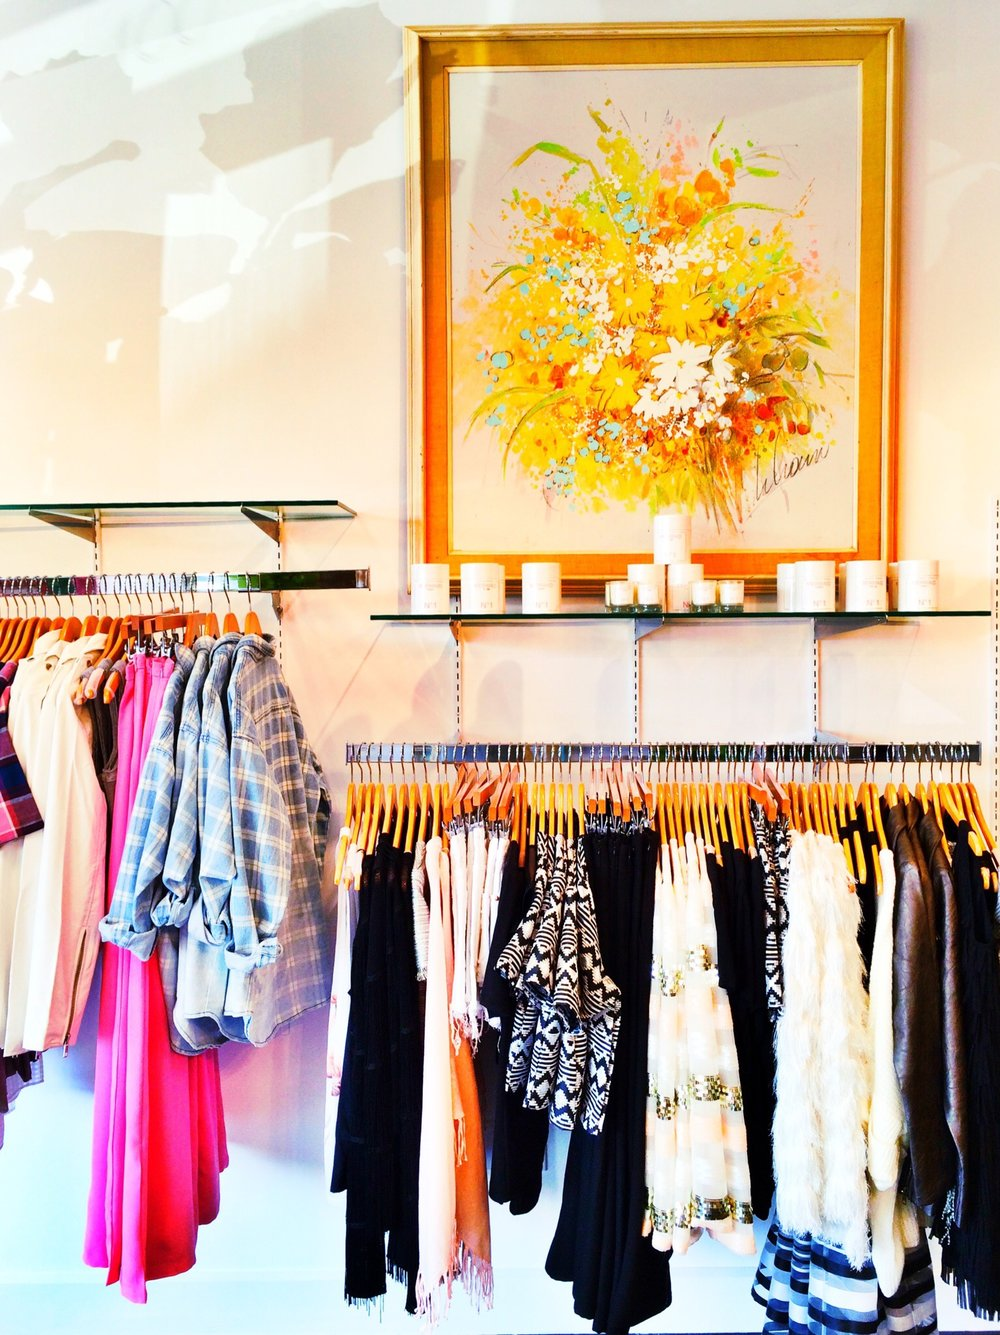 A look inside Beehive Boutique in Westlake